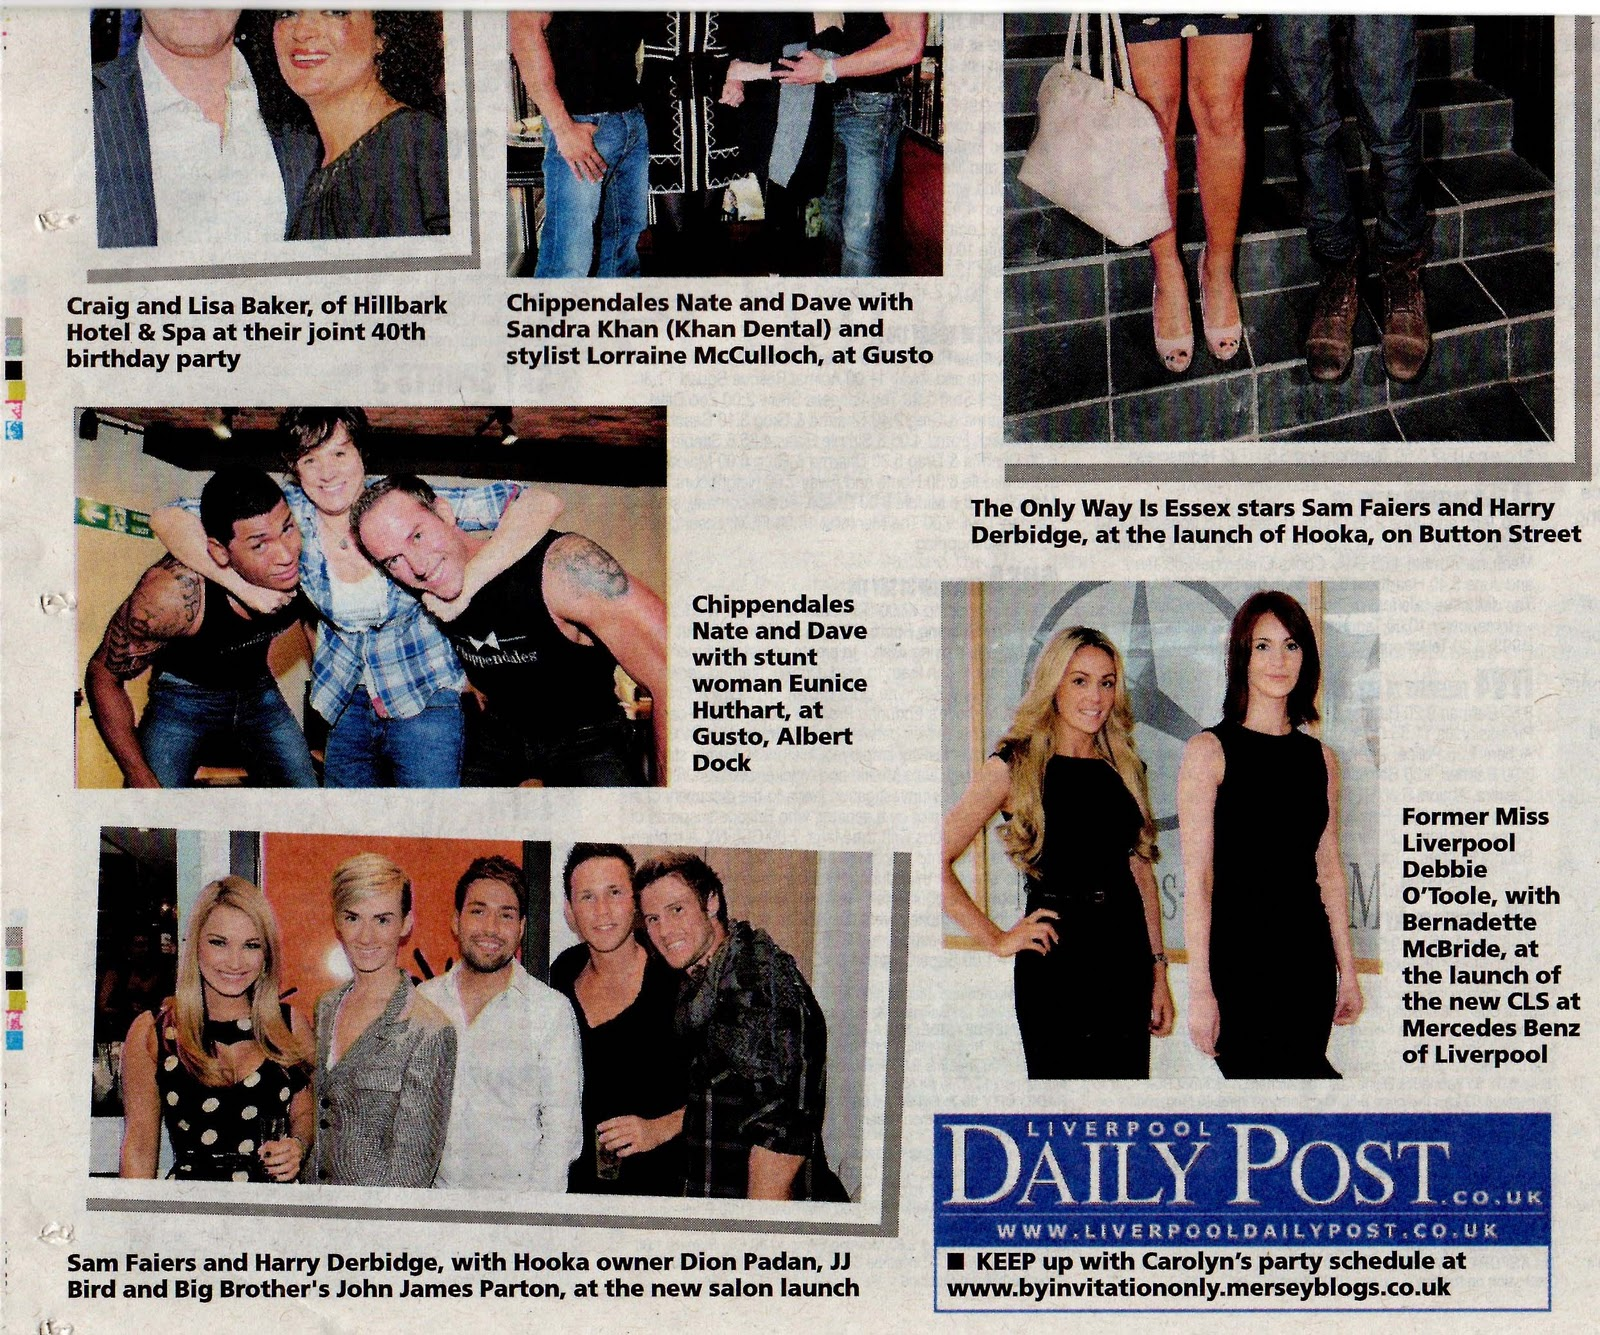 Impact Models Casting And Promotion Agency Liverpool Daily Post